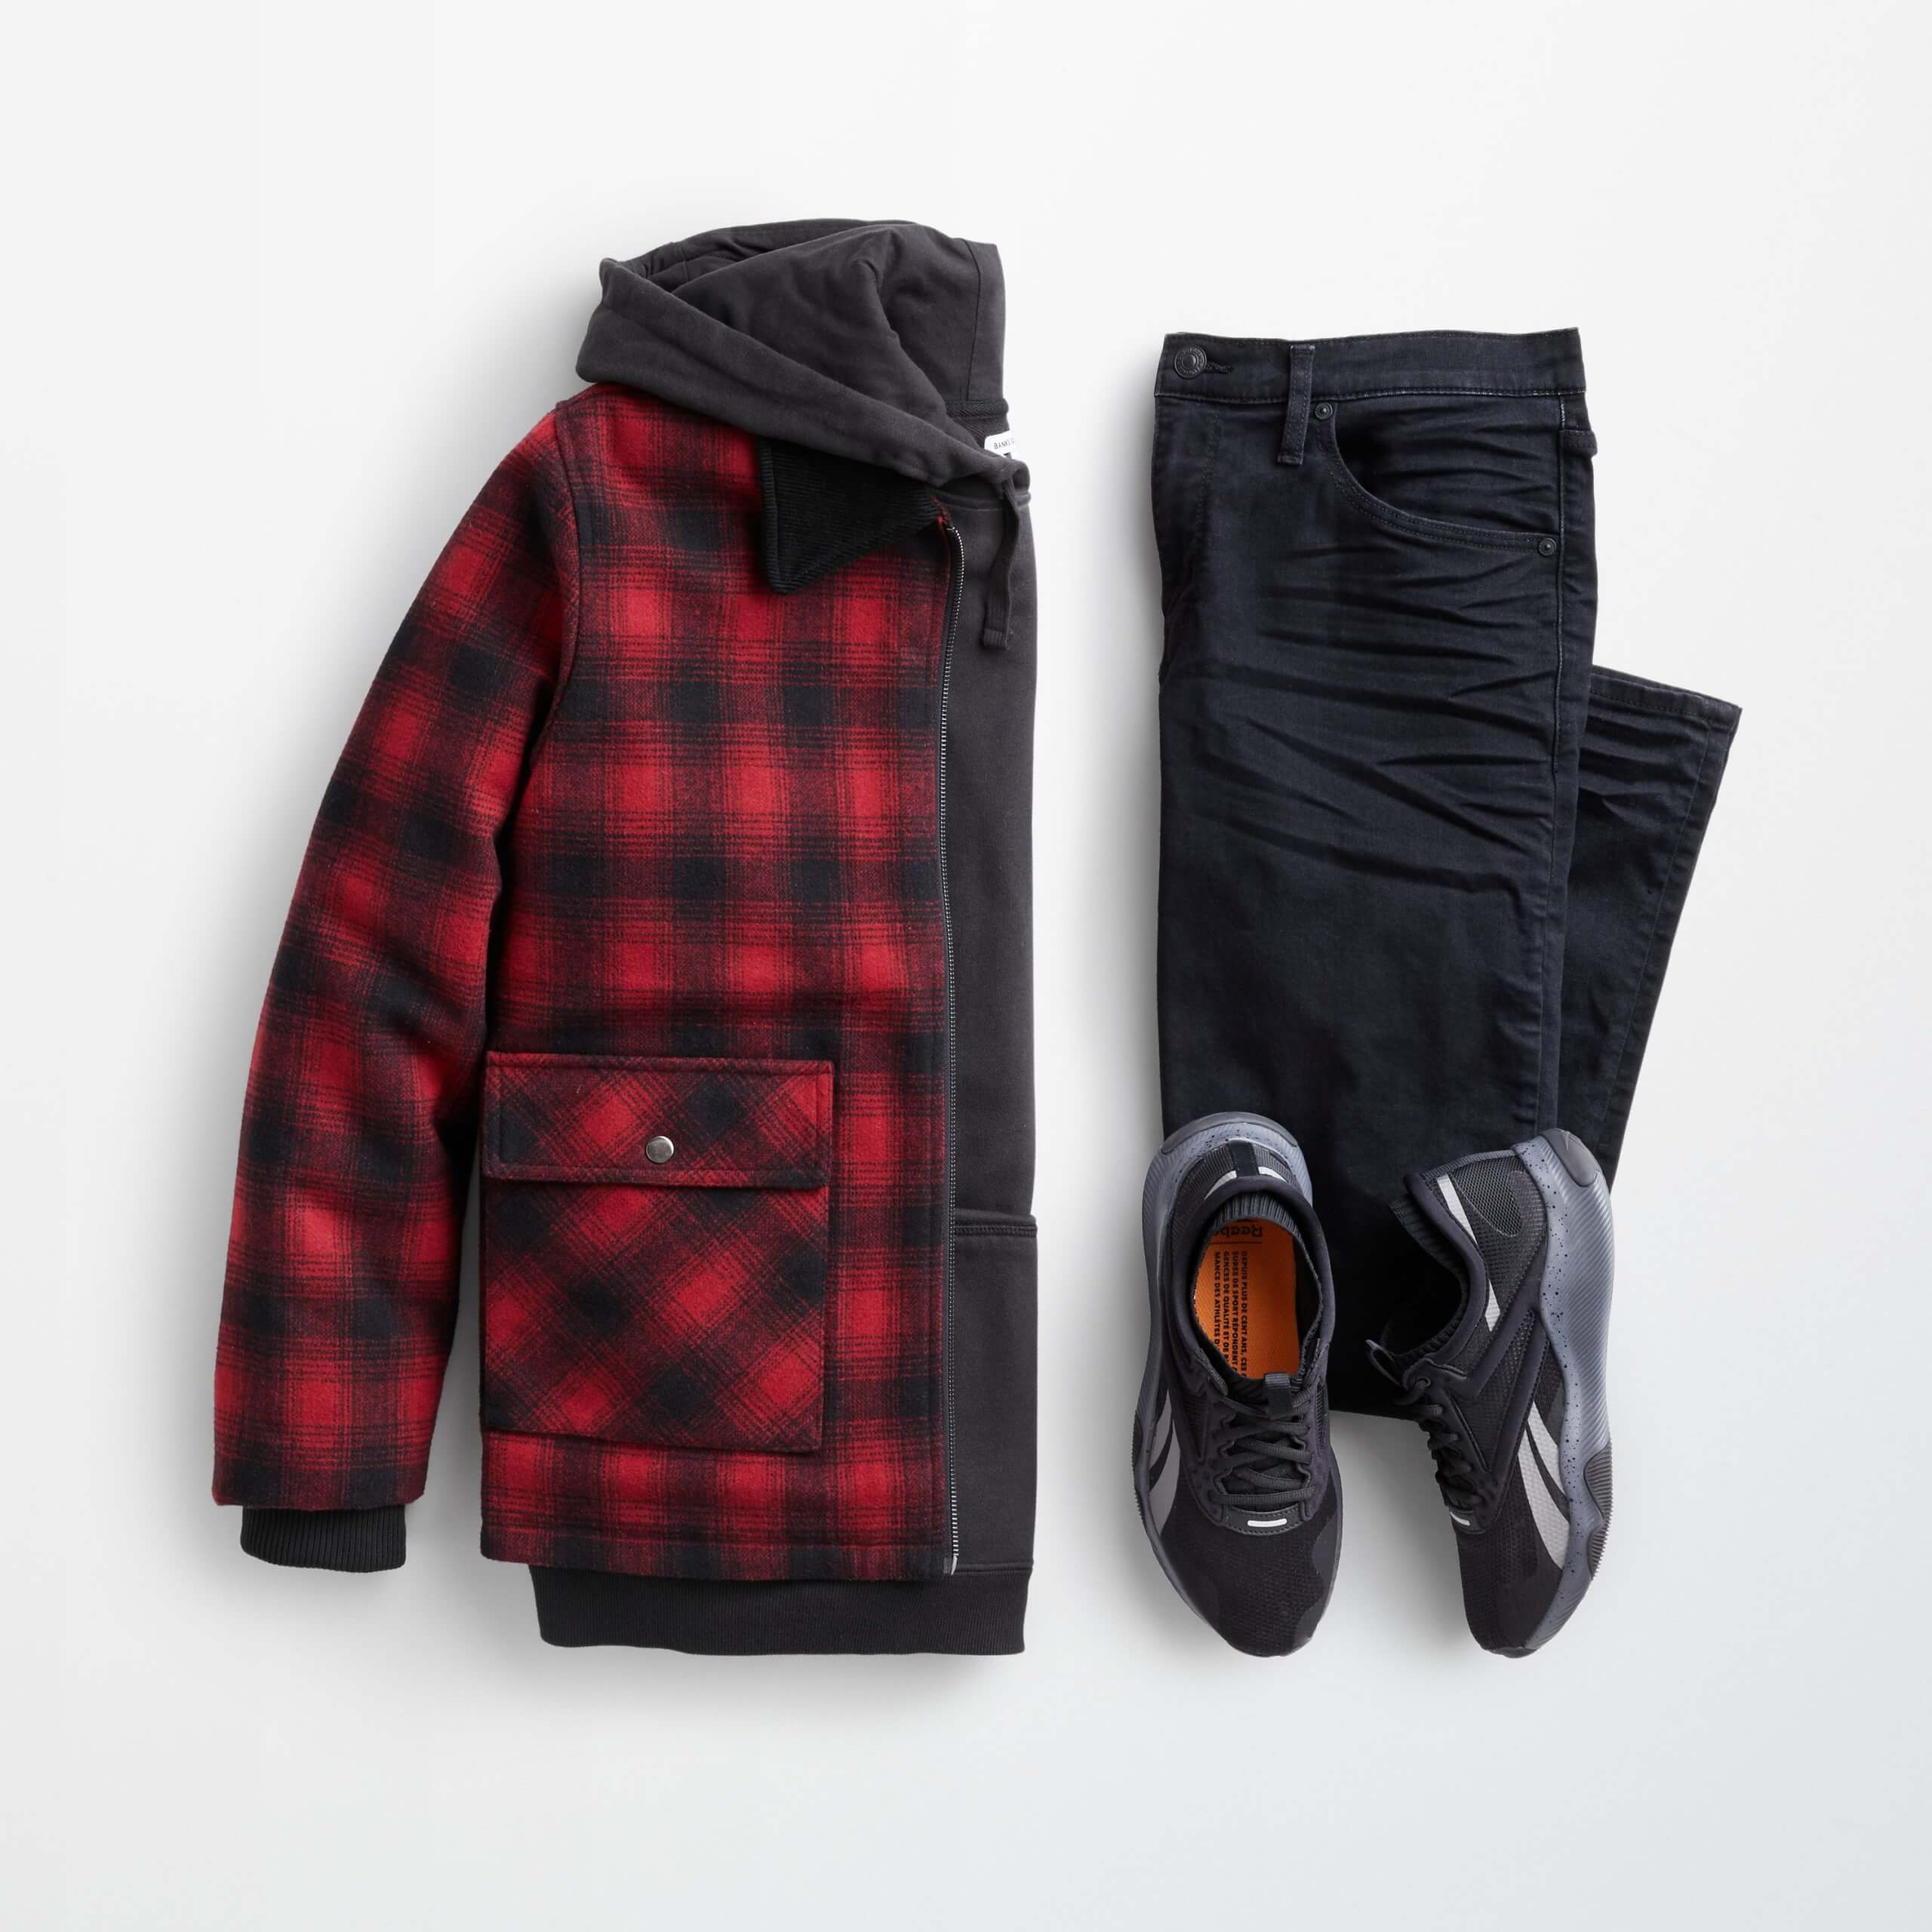 Stitch Fix Men's outfit laydown featuring a red and black plaid trucker jacket over a black hoodie, next to black jeans and black sneakers.